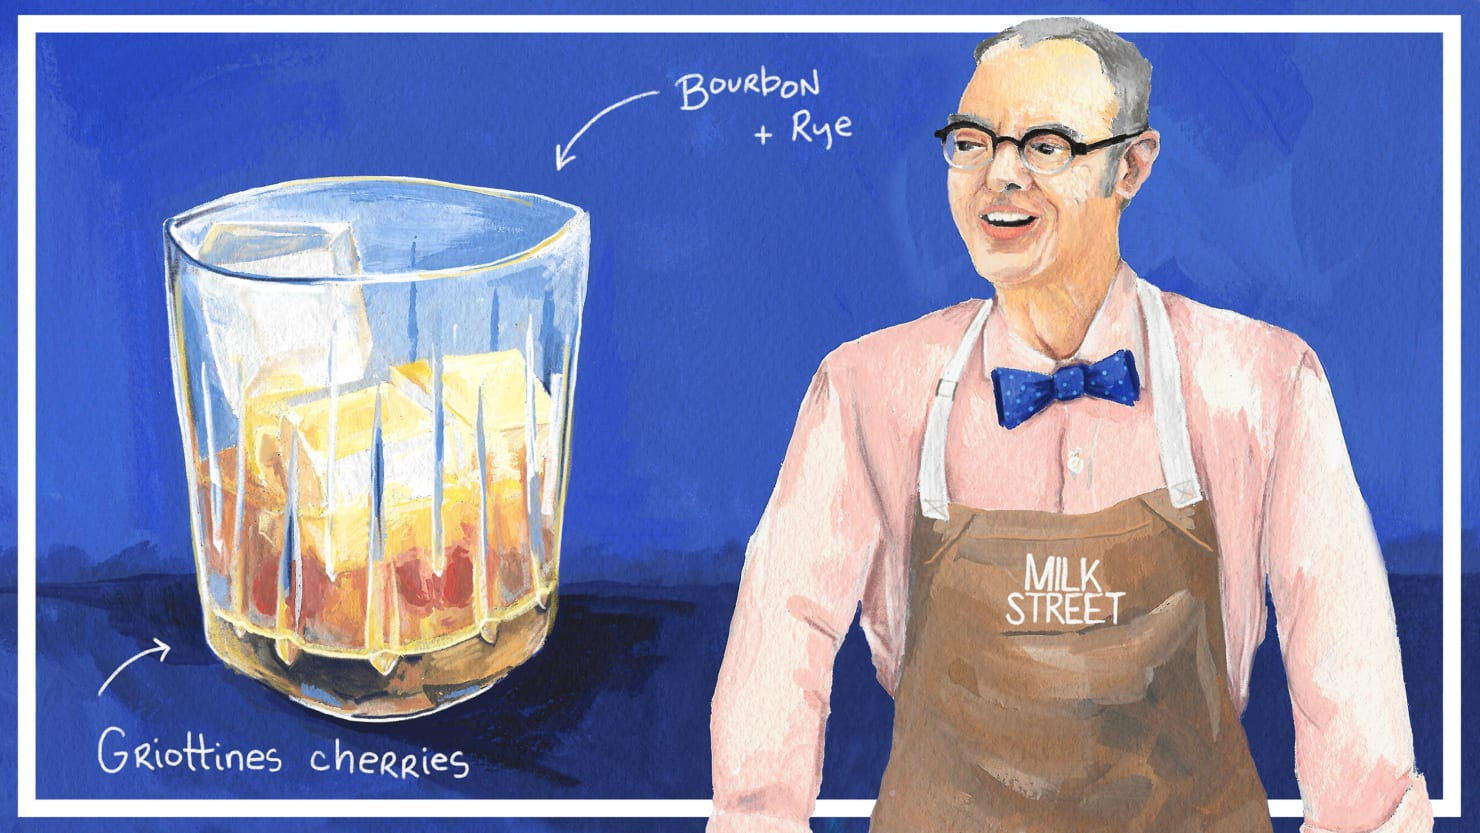 Christopher Kimball's Supremely Unorthodox Old-Fashioned